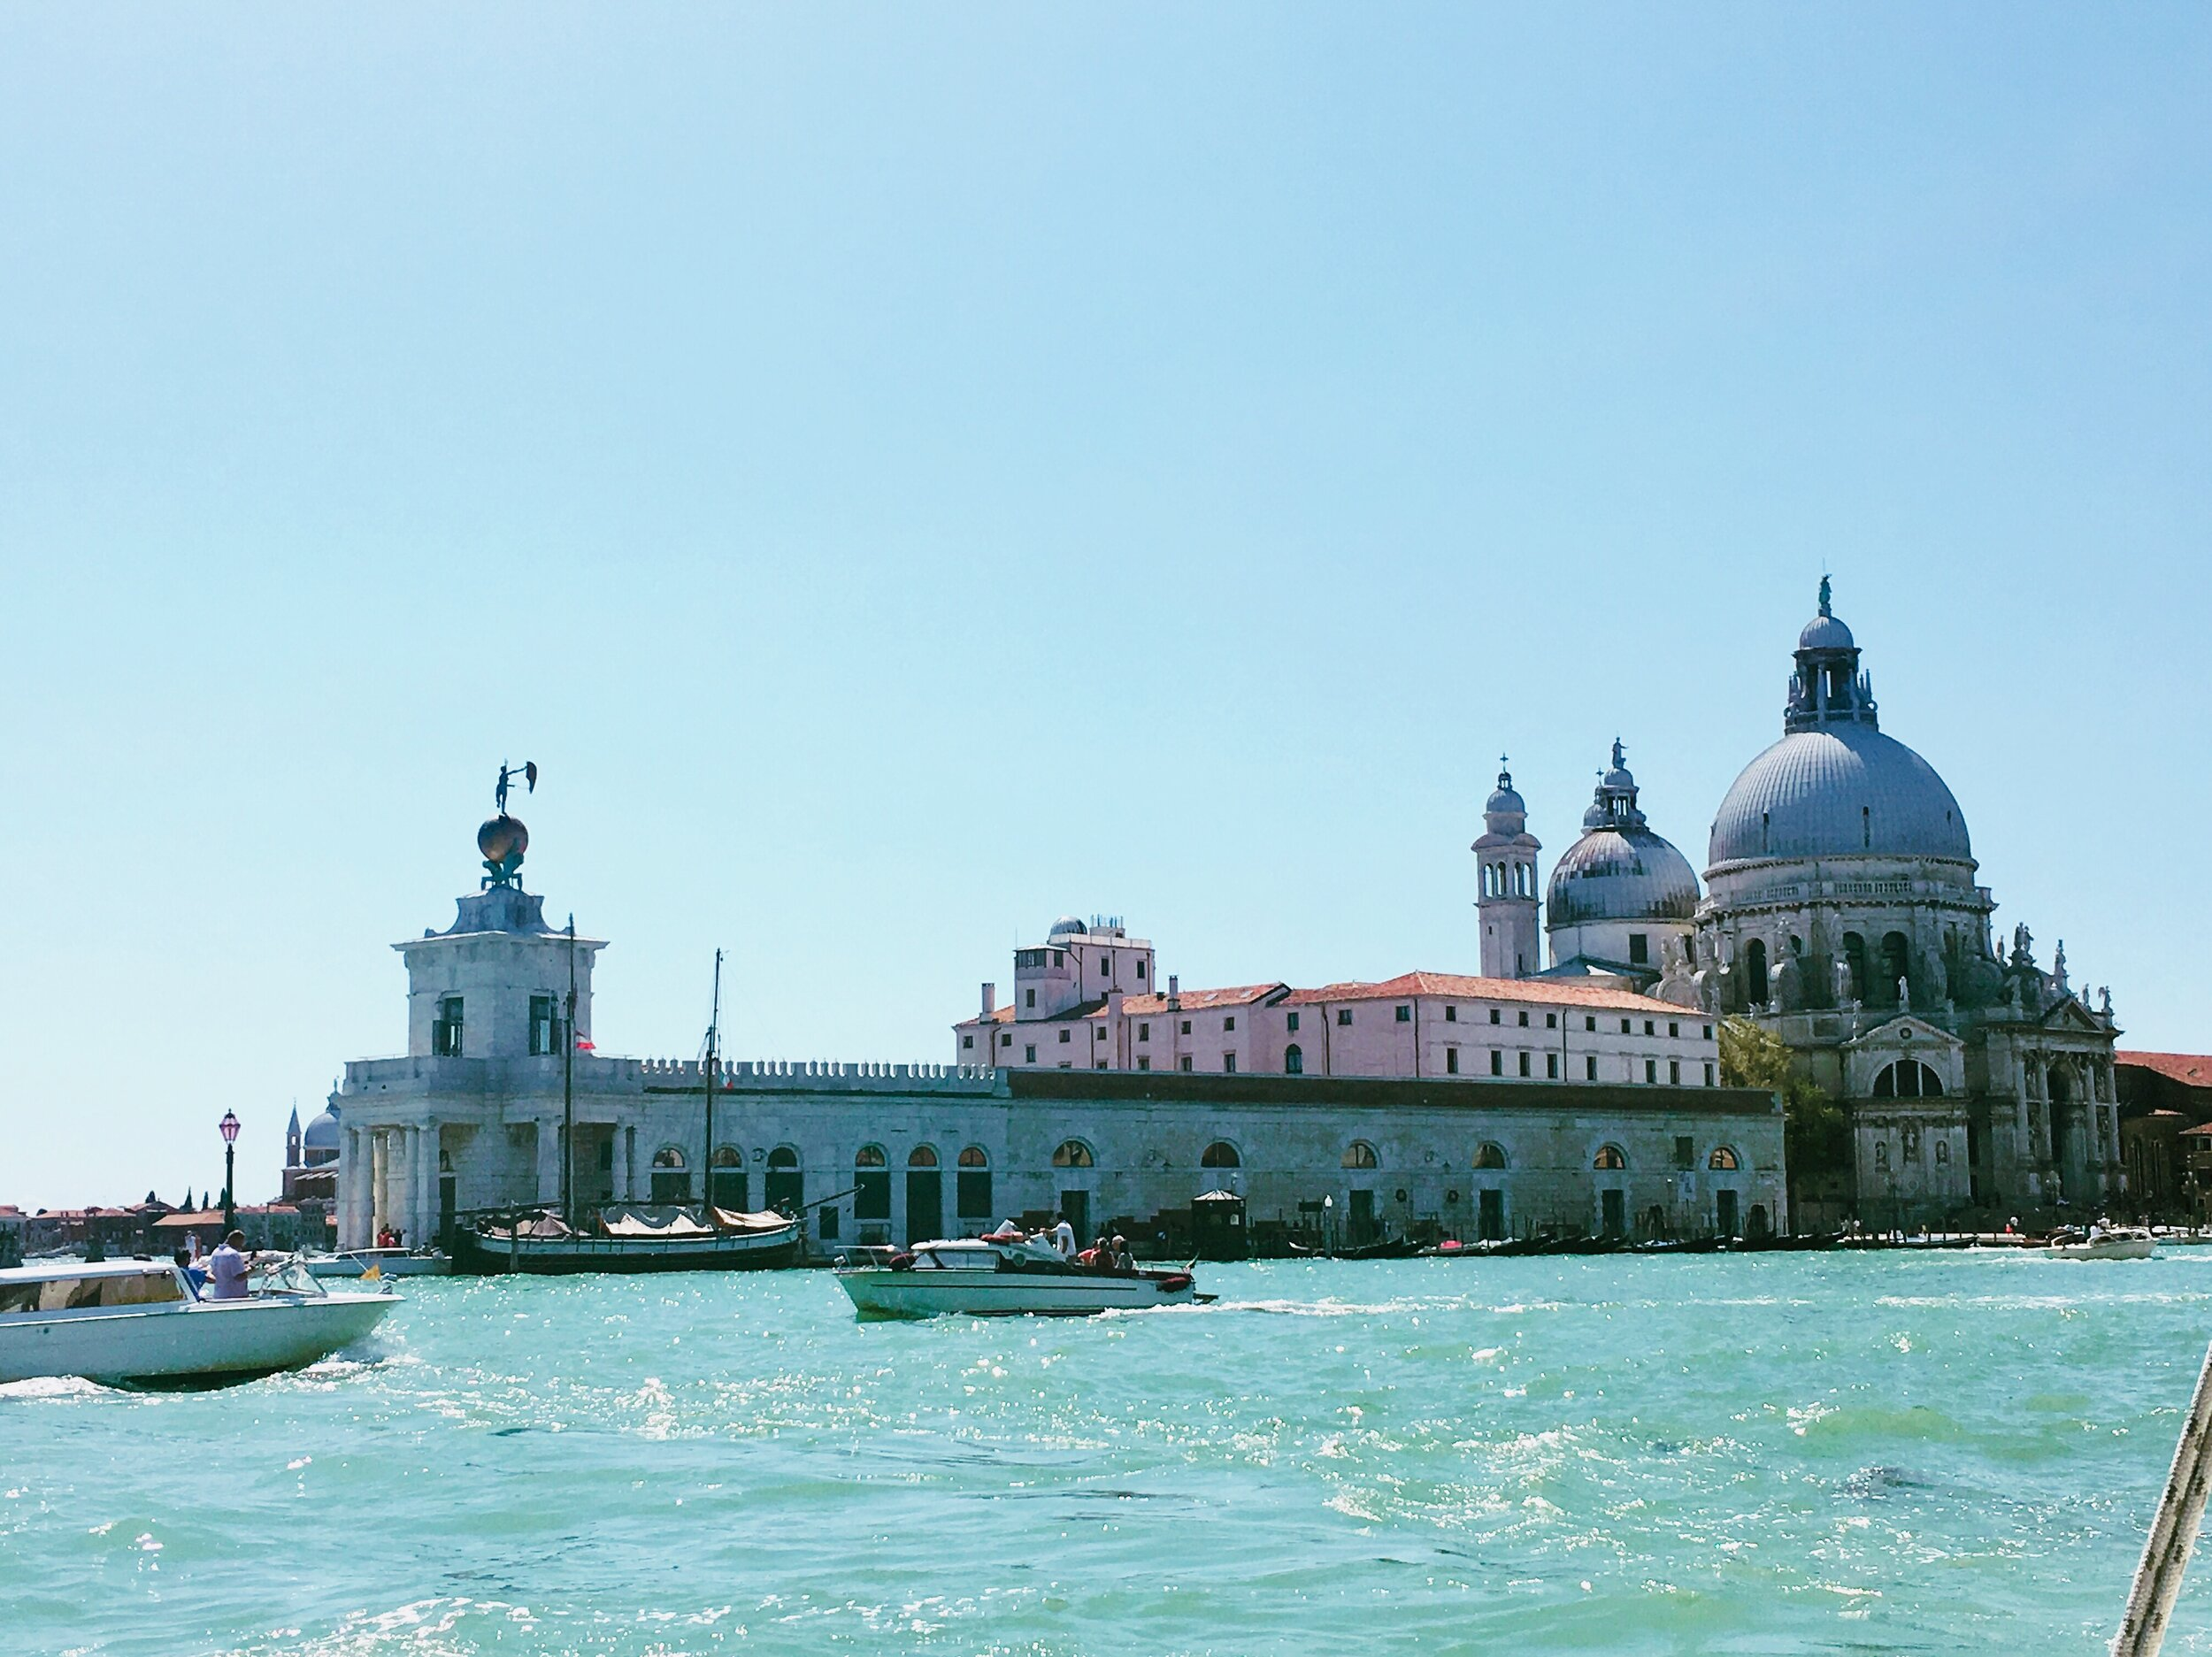 Come experience the colors, sounds and tastes of Venice Italy!